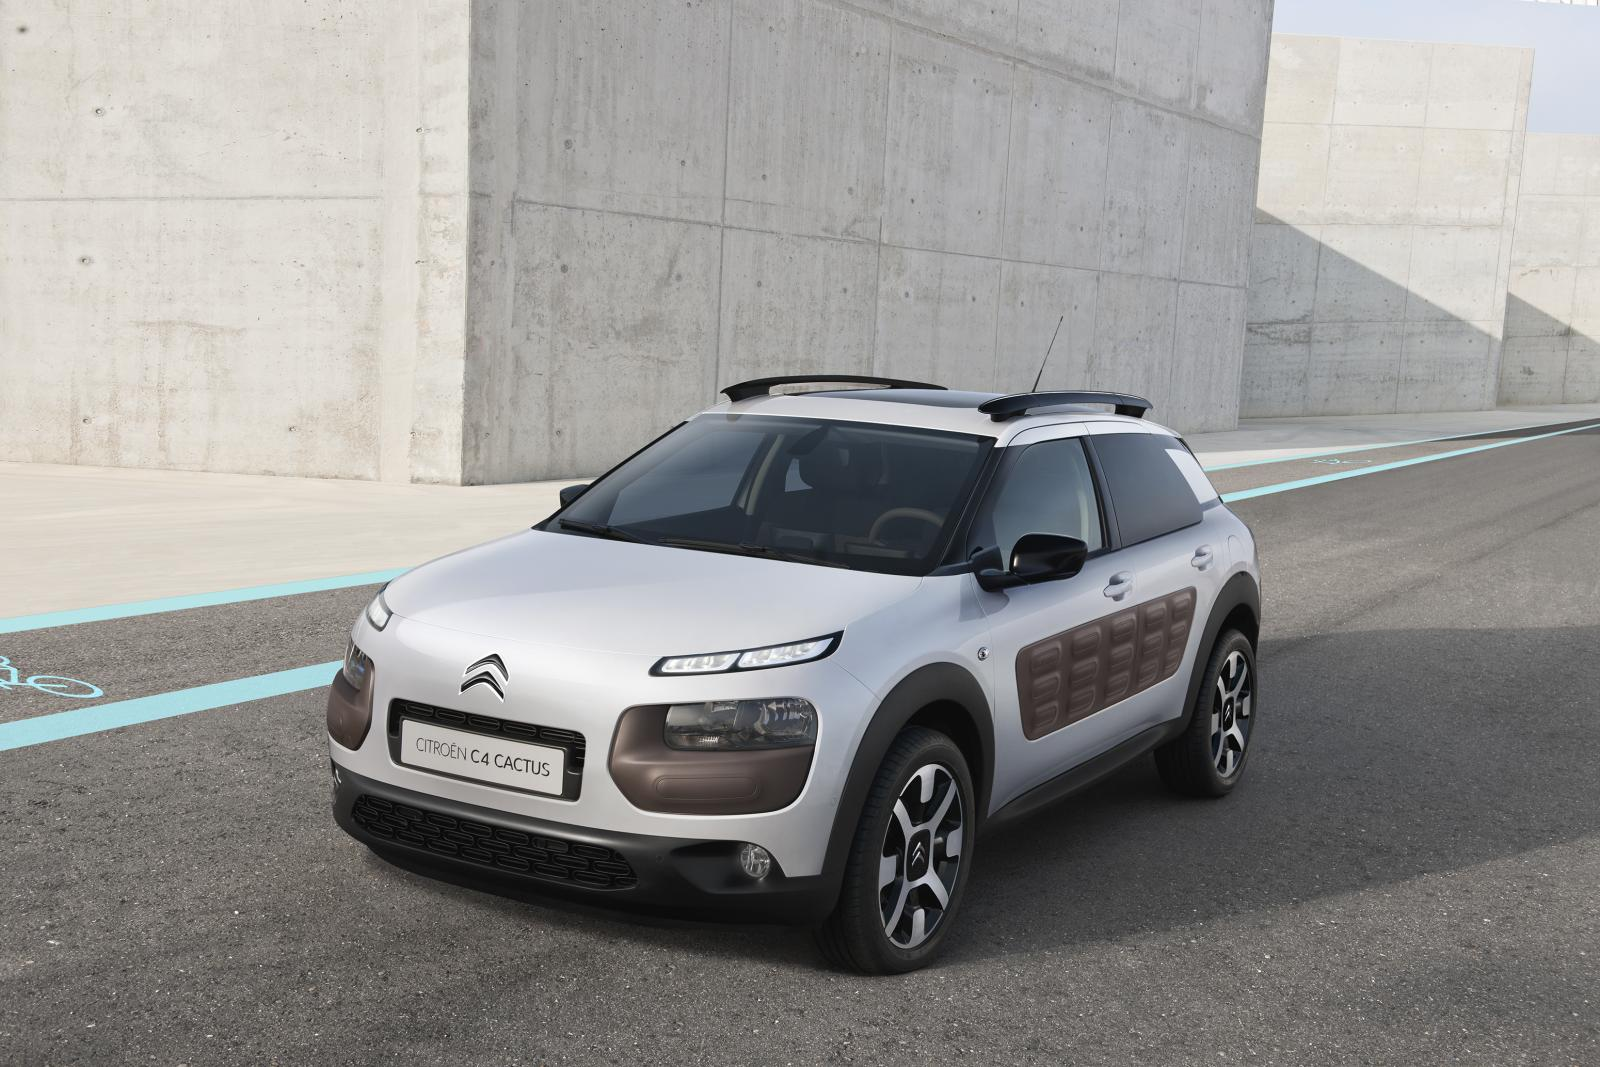 C4 Cactus Shine edition 2014 Amsterdam 3/4 front